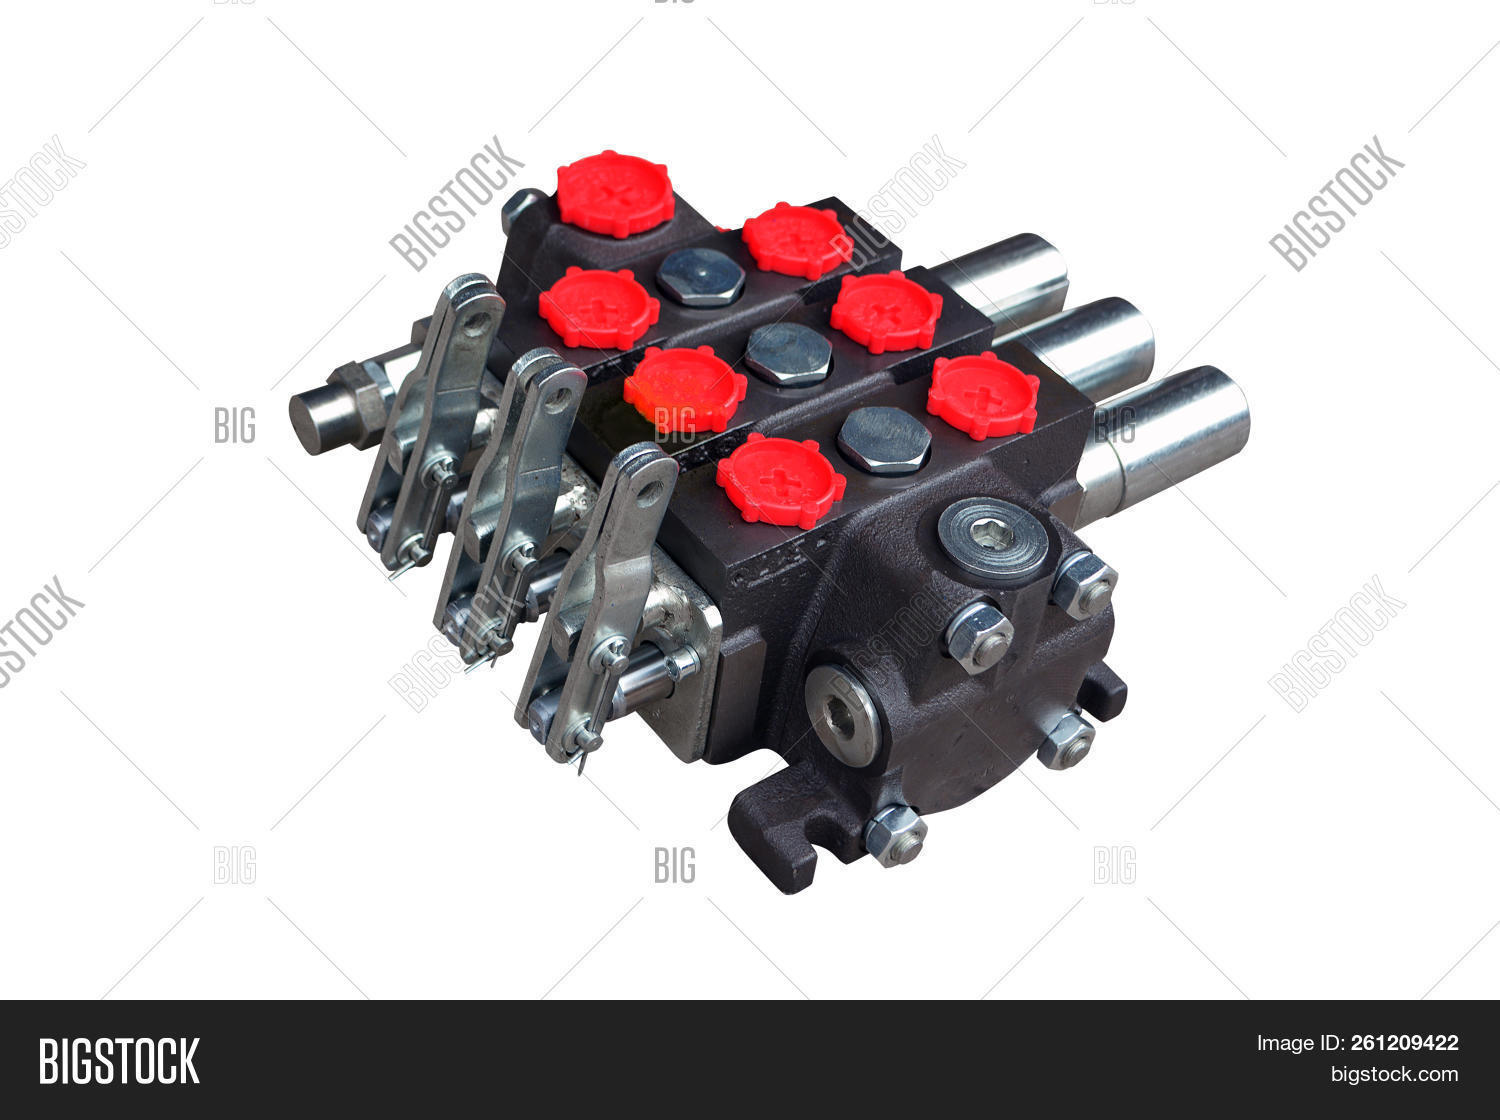 hydraulic distributor of the tractor on isolated white background